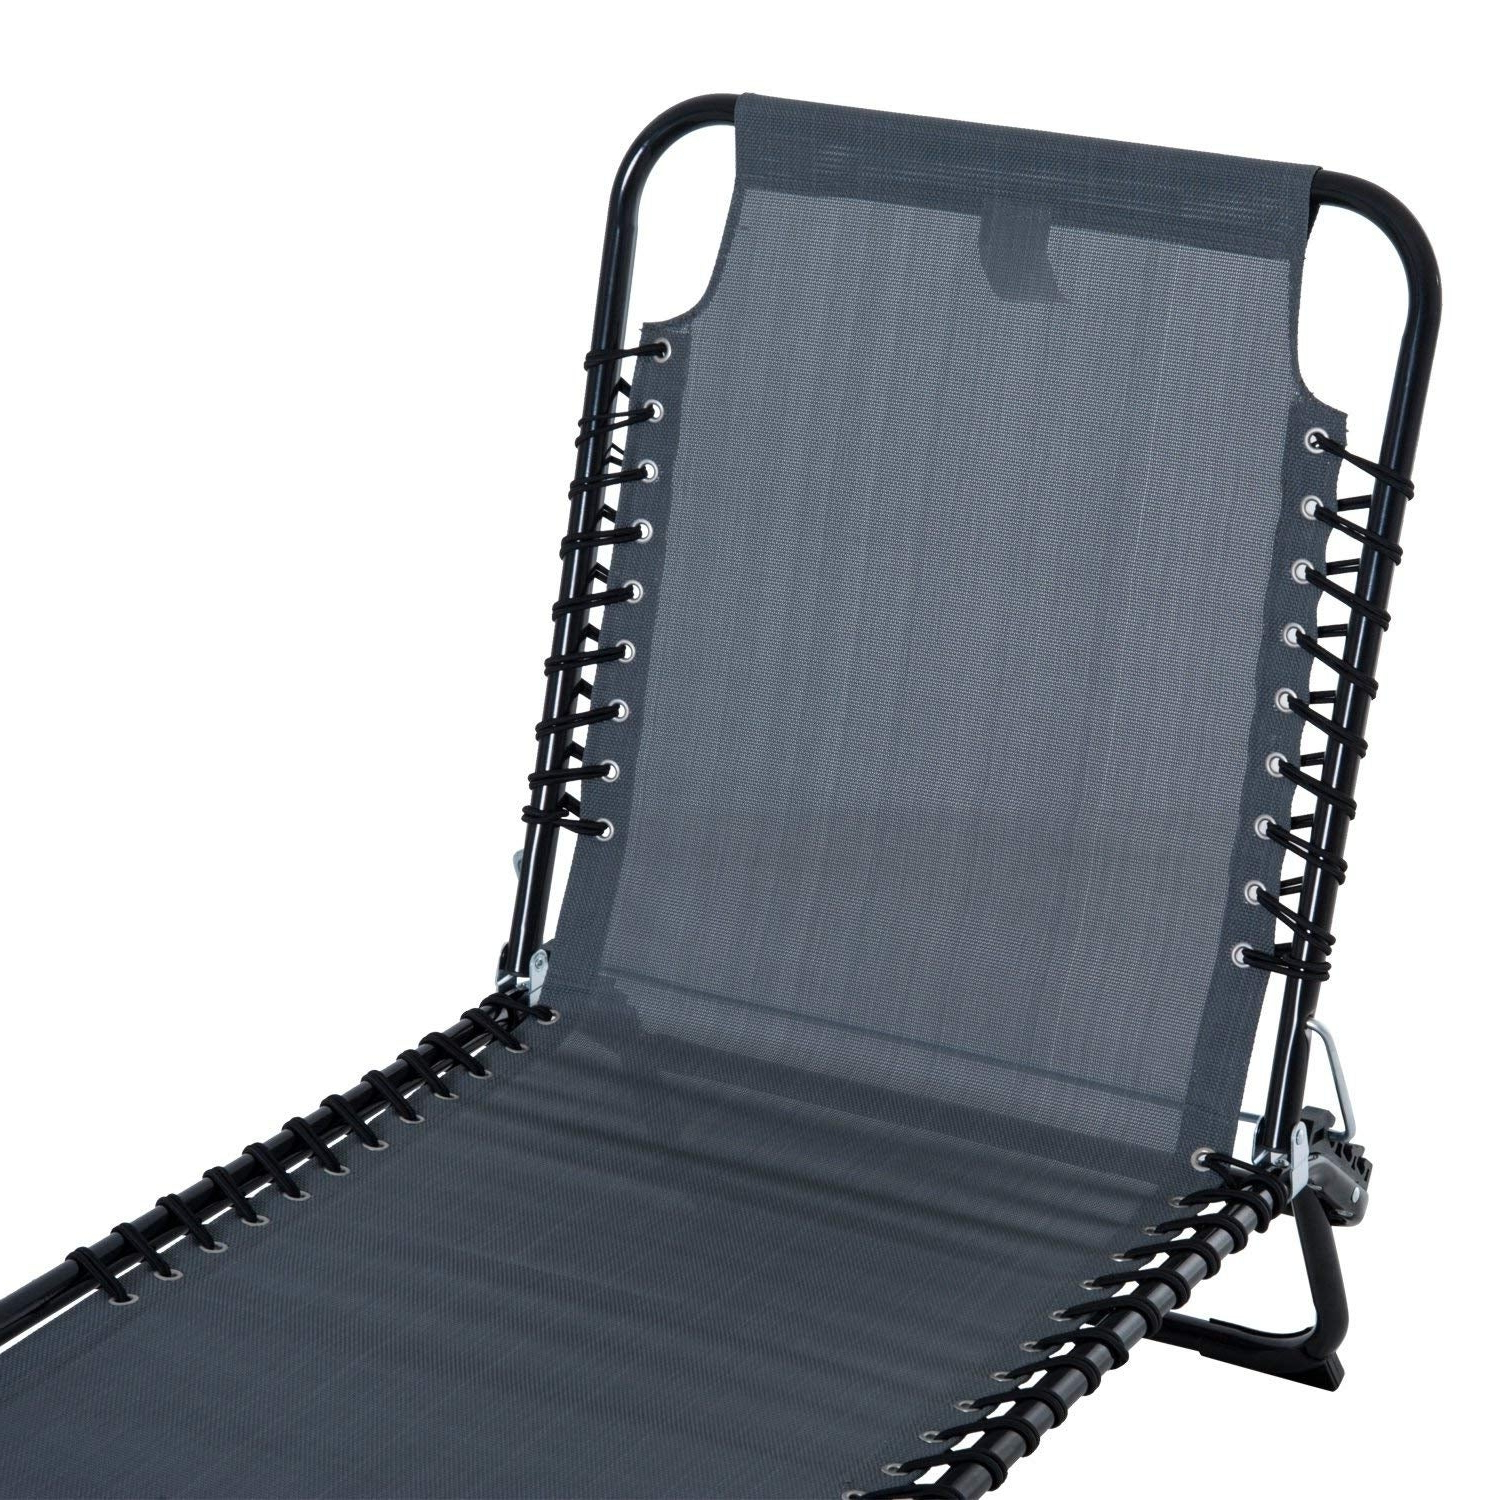 Most Popular 3 Position Portable Reclining Beach Chaise Lounges In Outsunny 3 Position Portable Reclining Beach Chaise Lounge Folding Chair Outdoor Patio – Grey (View 11 of 25)